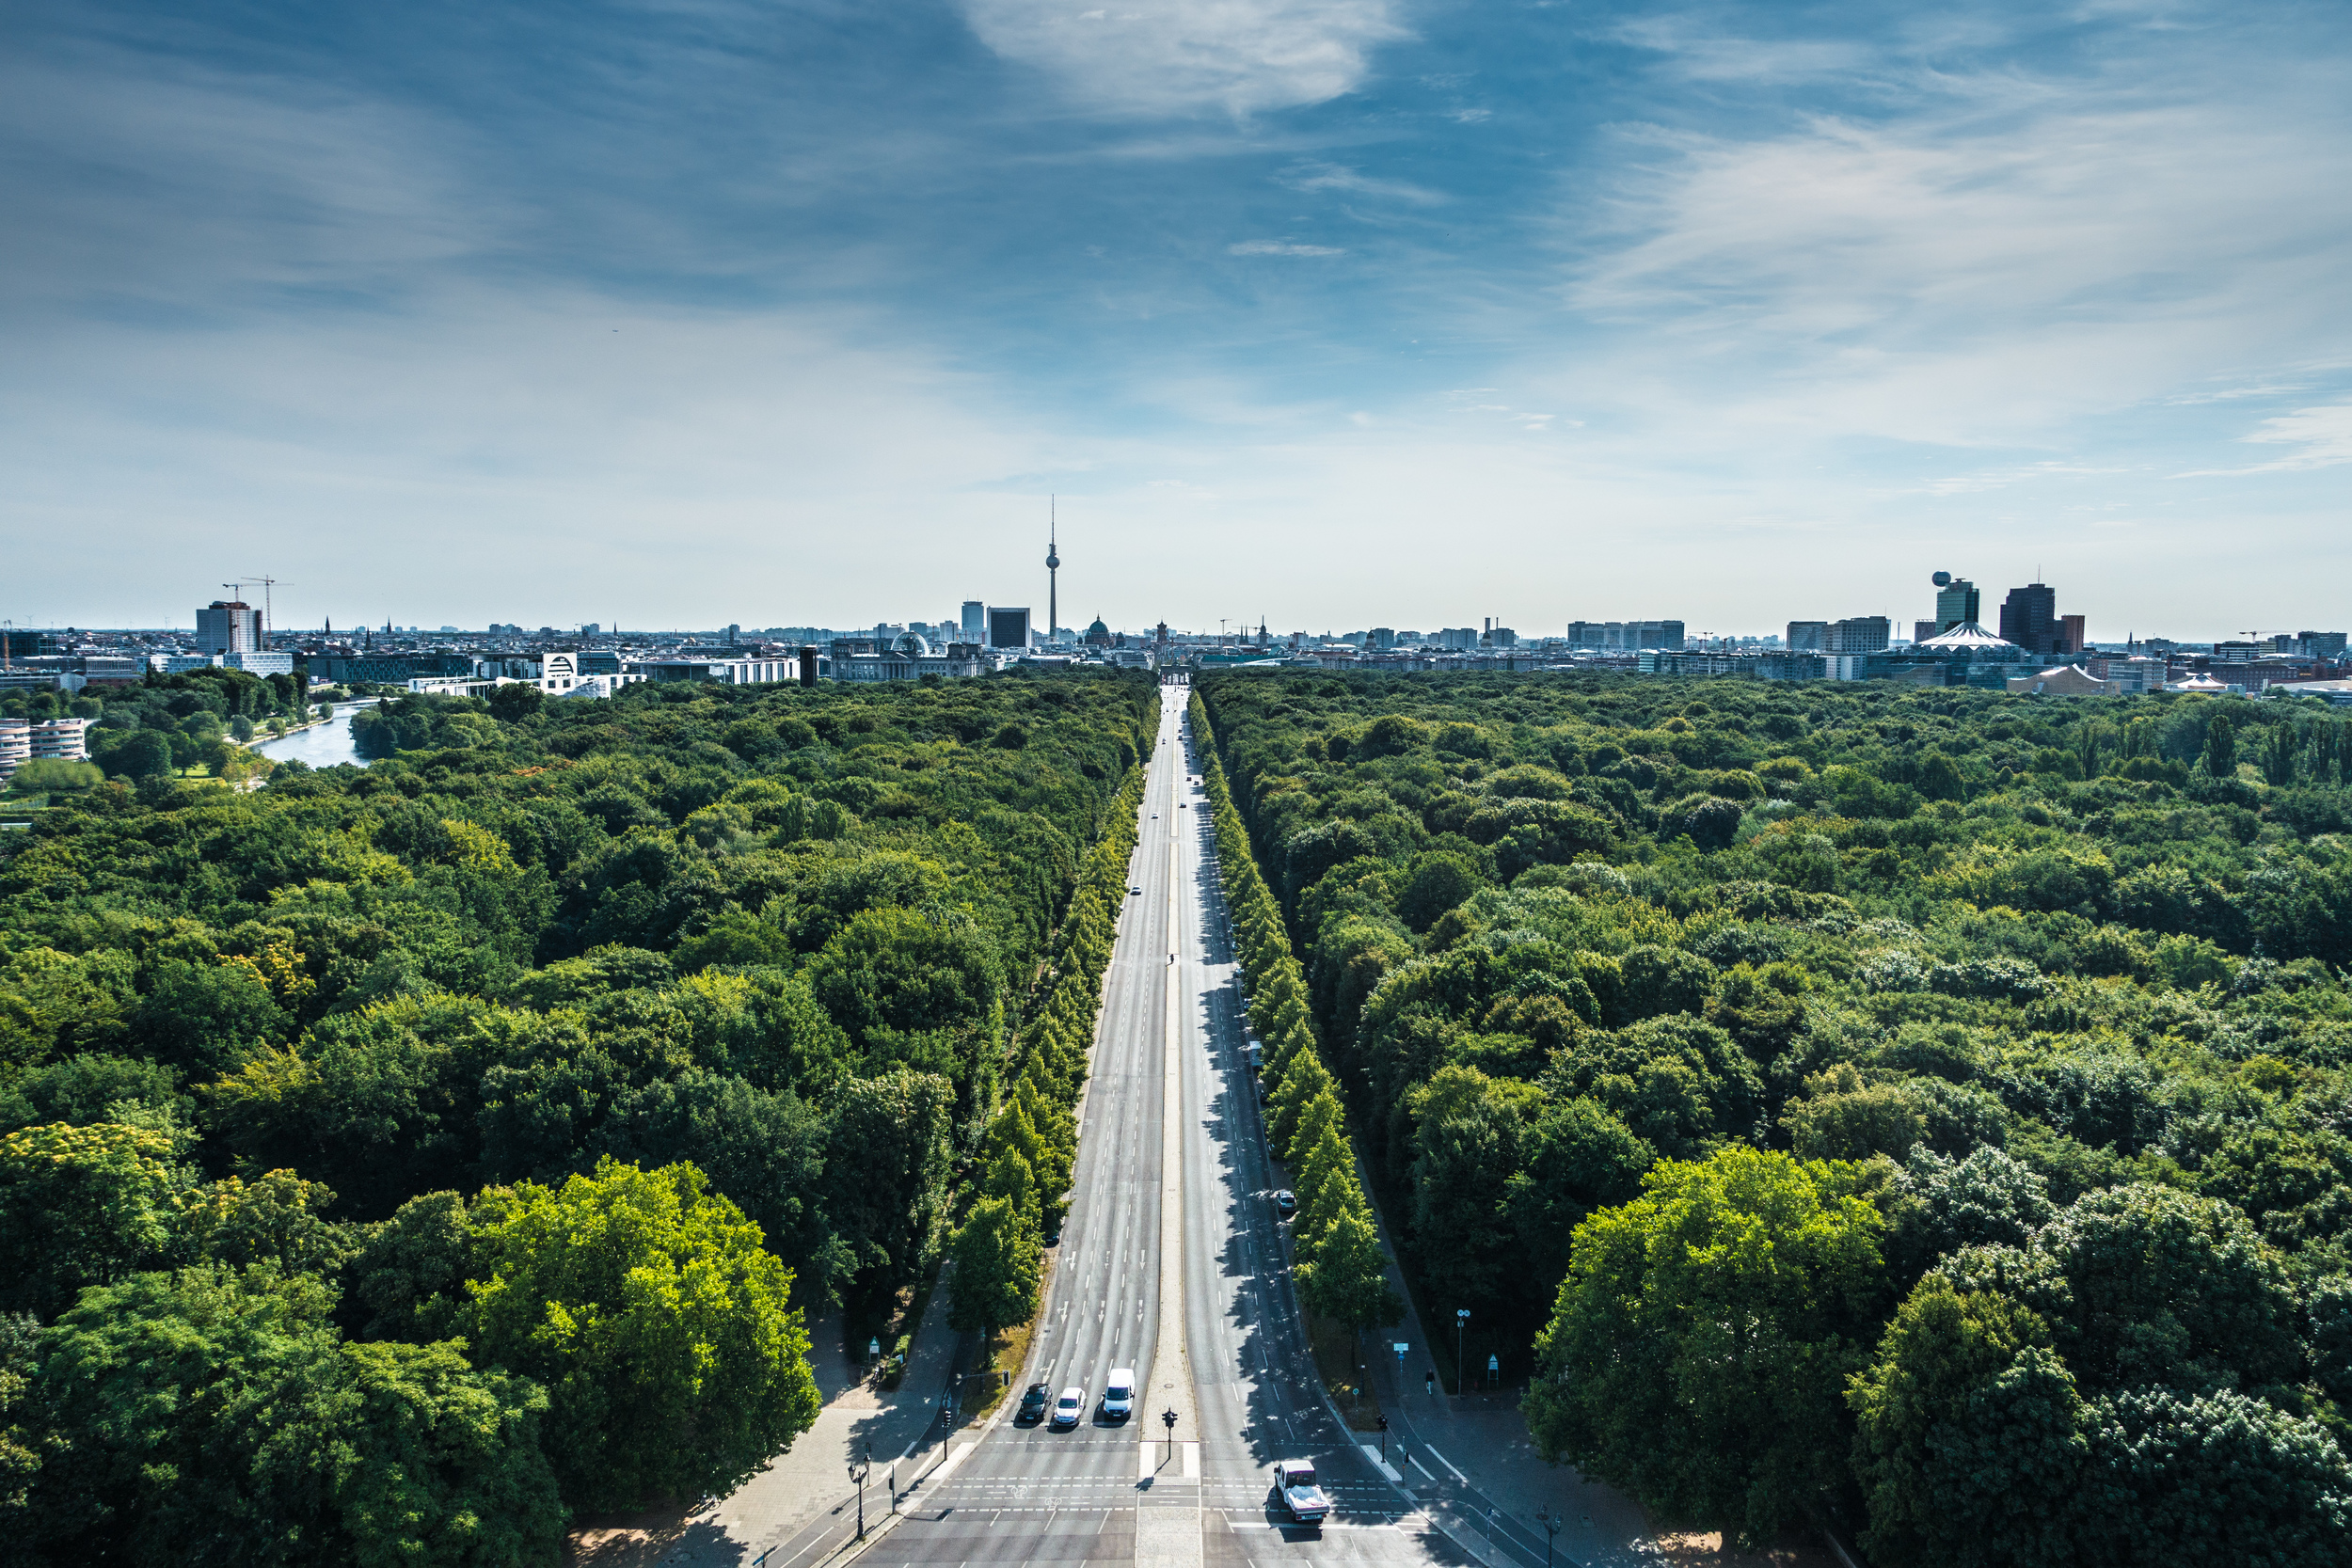 View of Berlin from Tiergarten, close to where Amy and Ethan rented an apartment